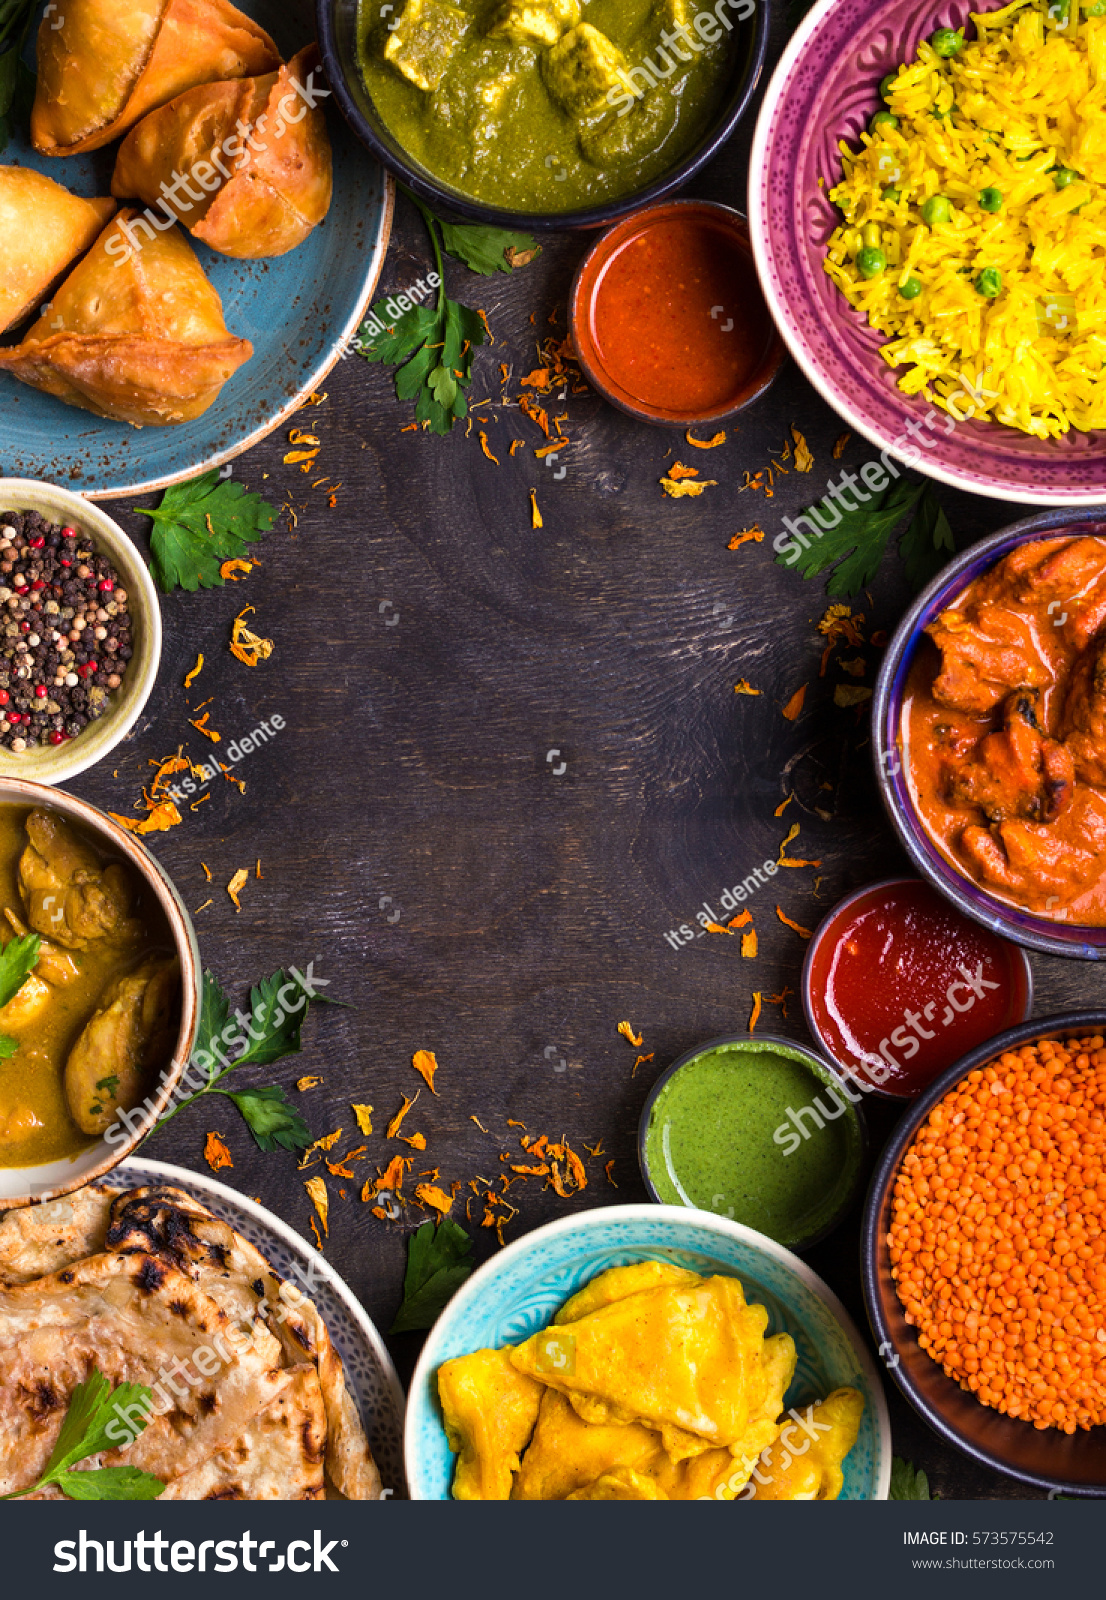 Wallpaper Food Cooking Grill Vegetables Peppers: Assorted Indian Food On Dark Wooden Stock Photo 573575542